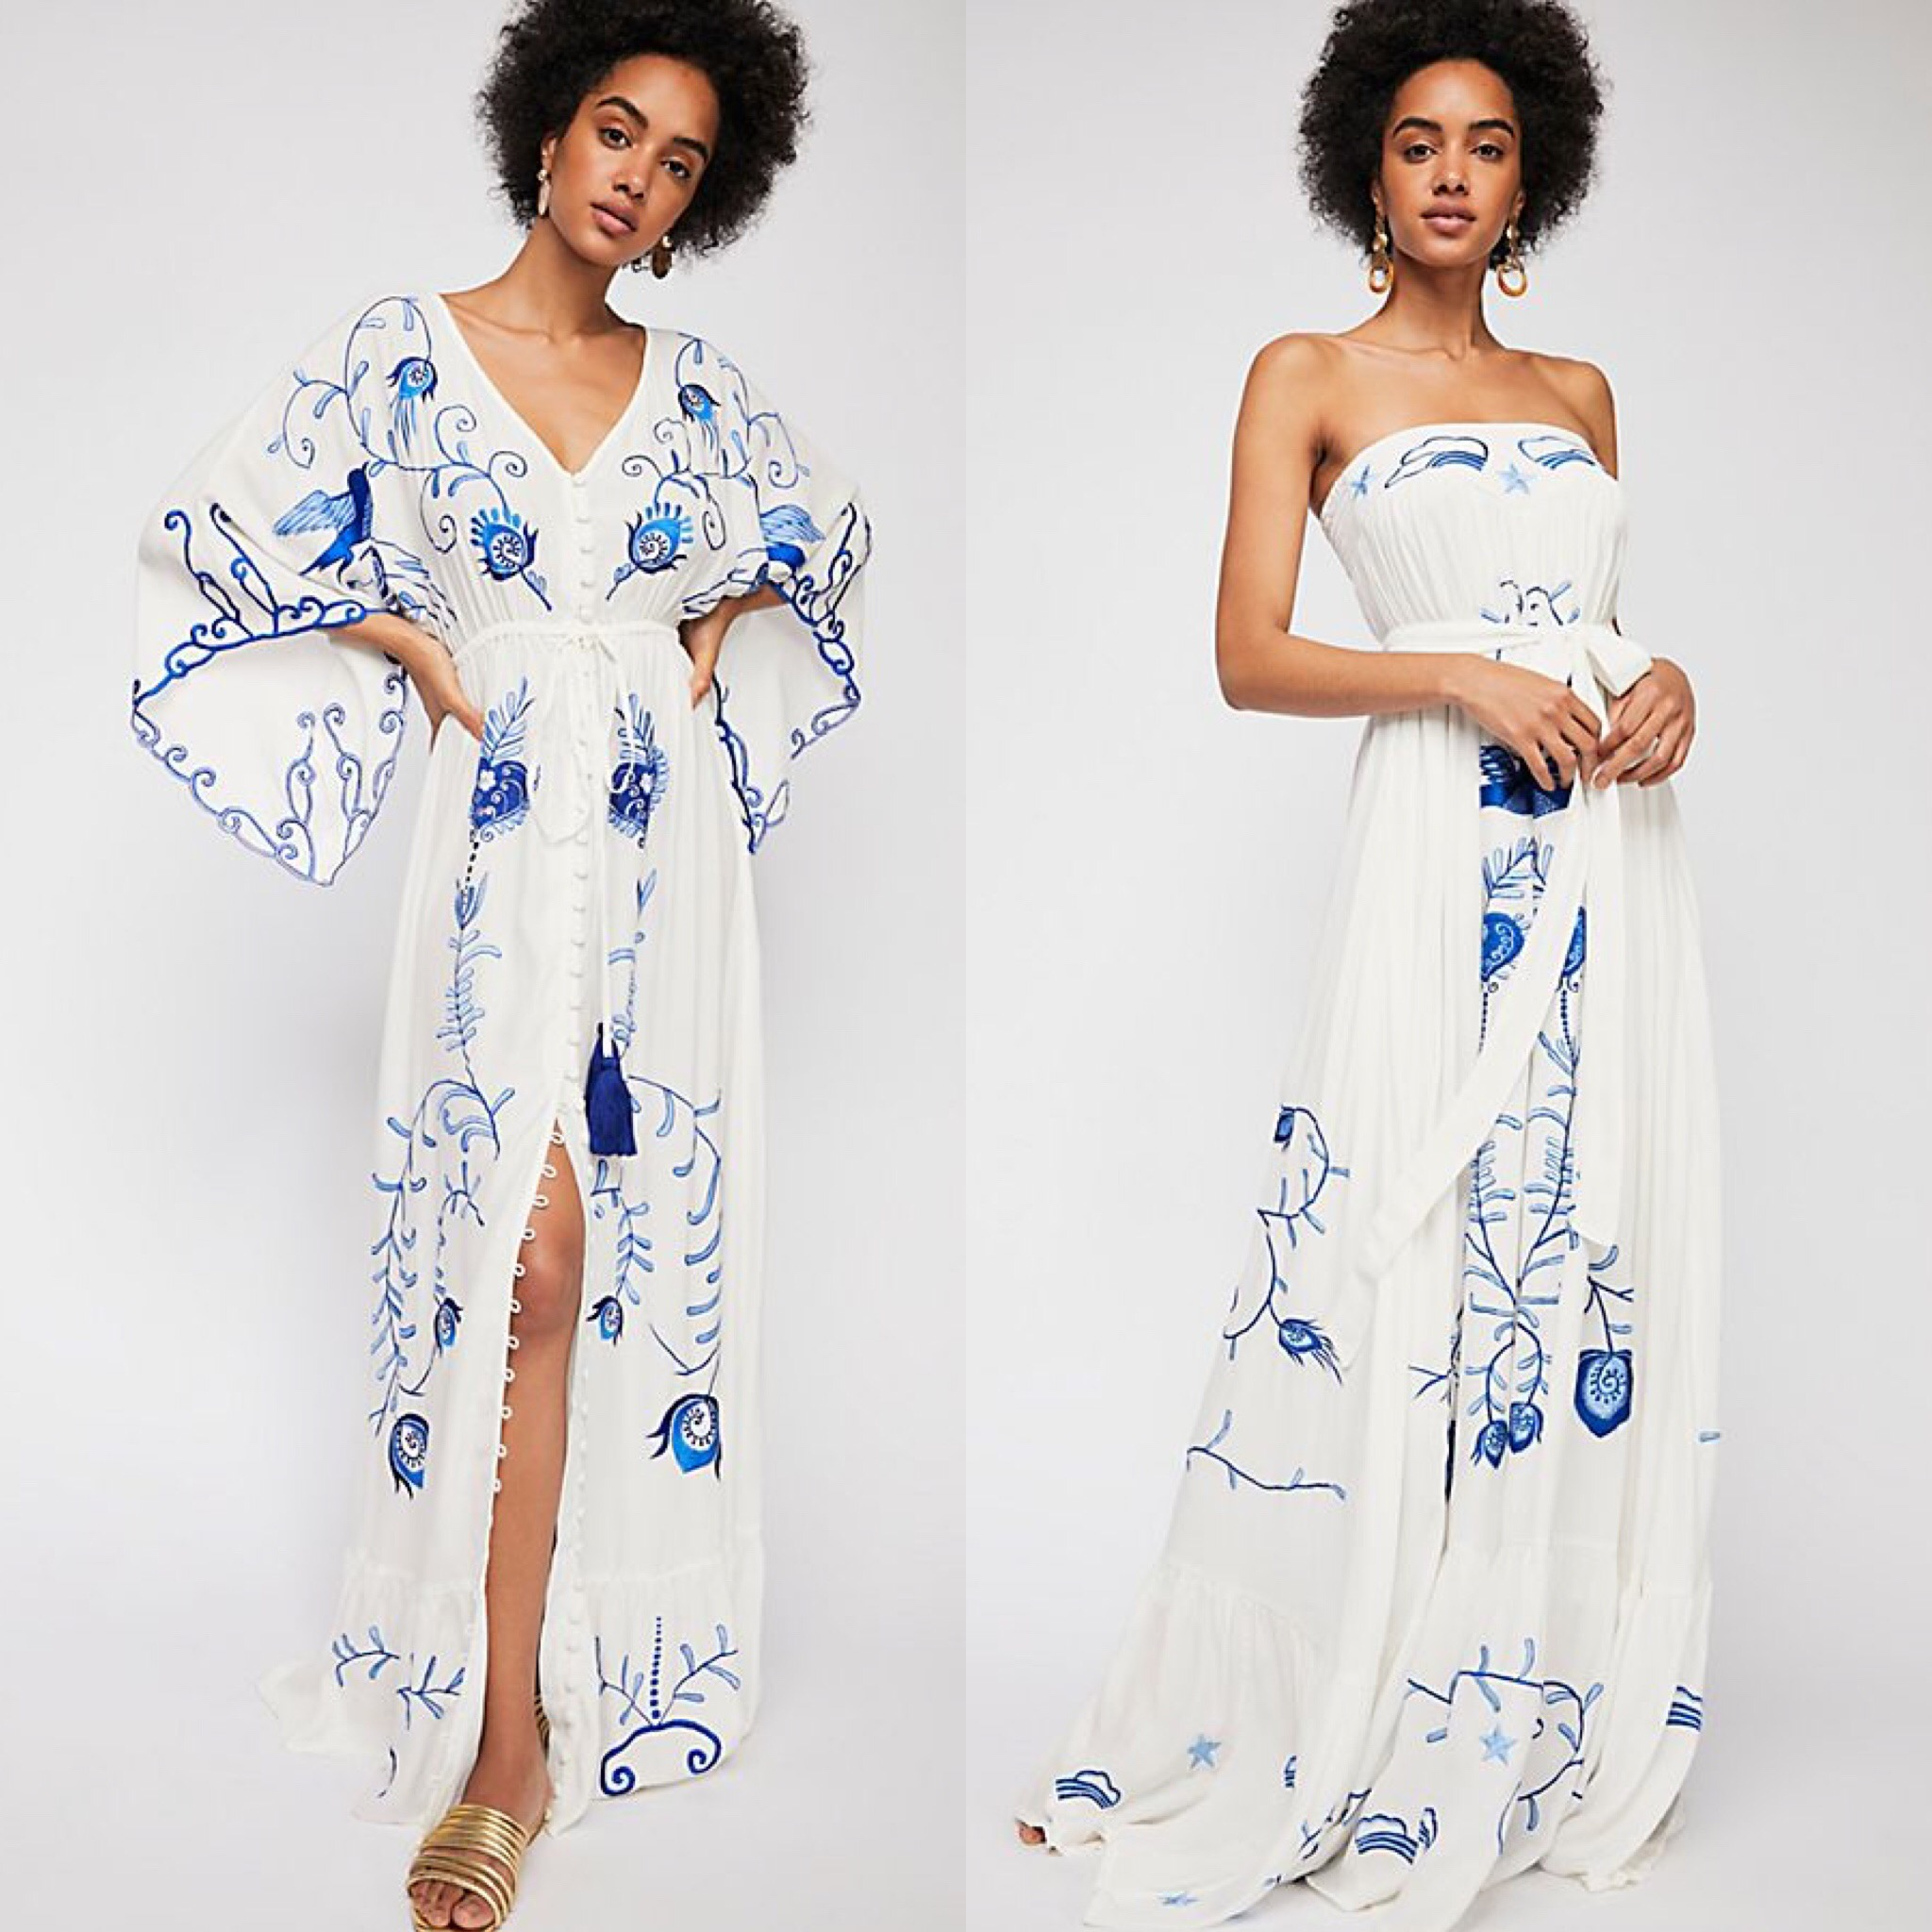 Both from FreePeople.com